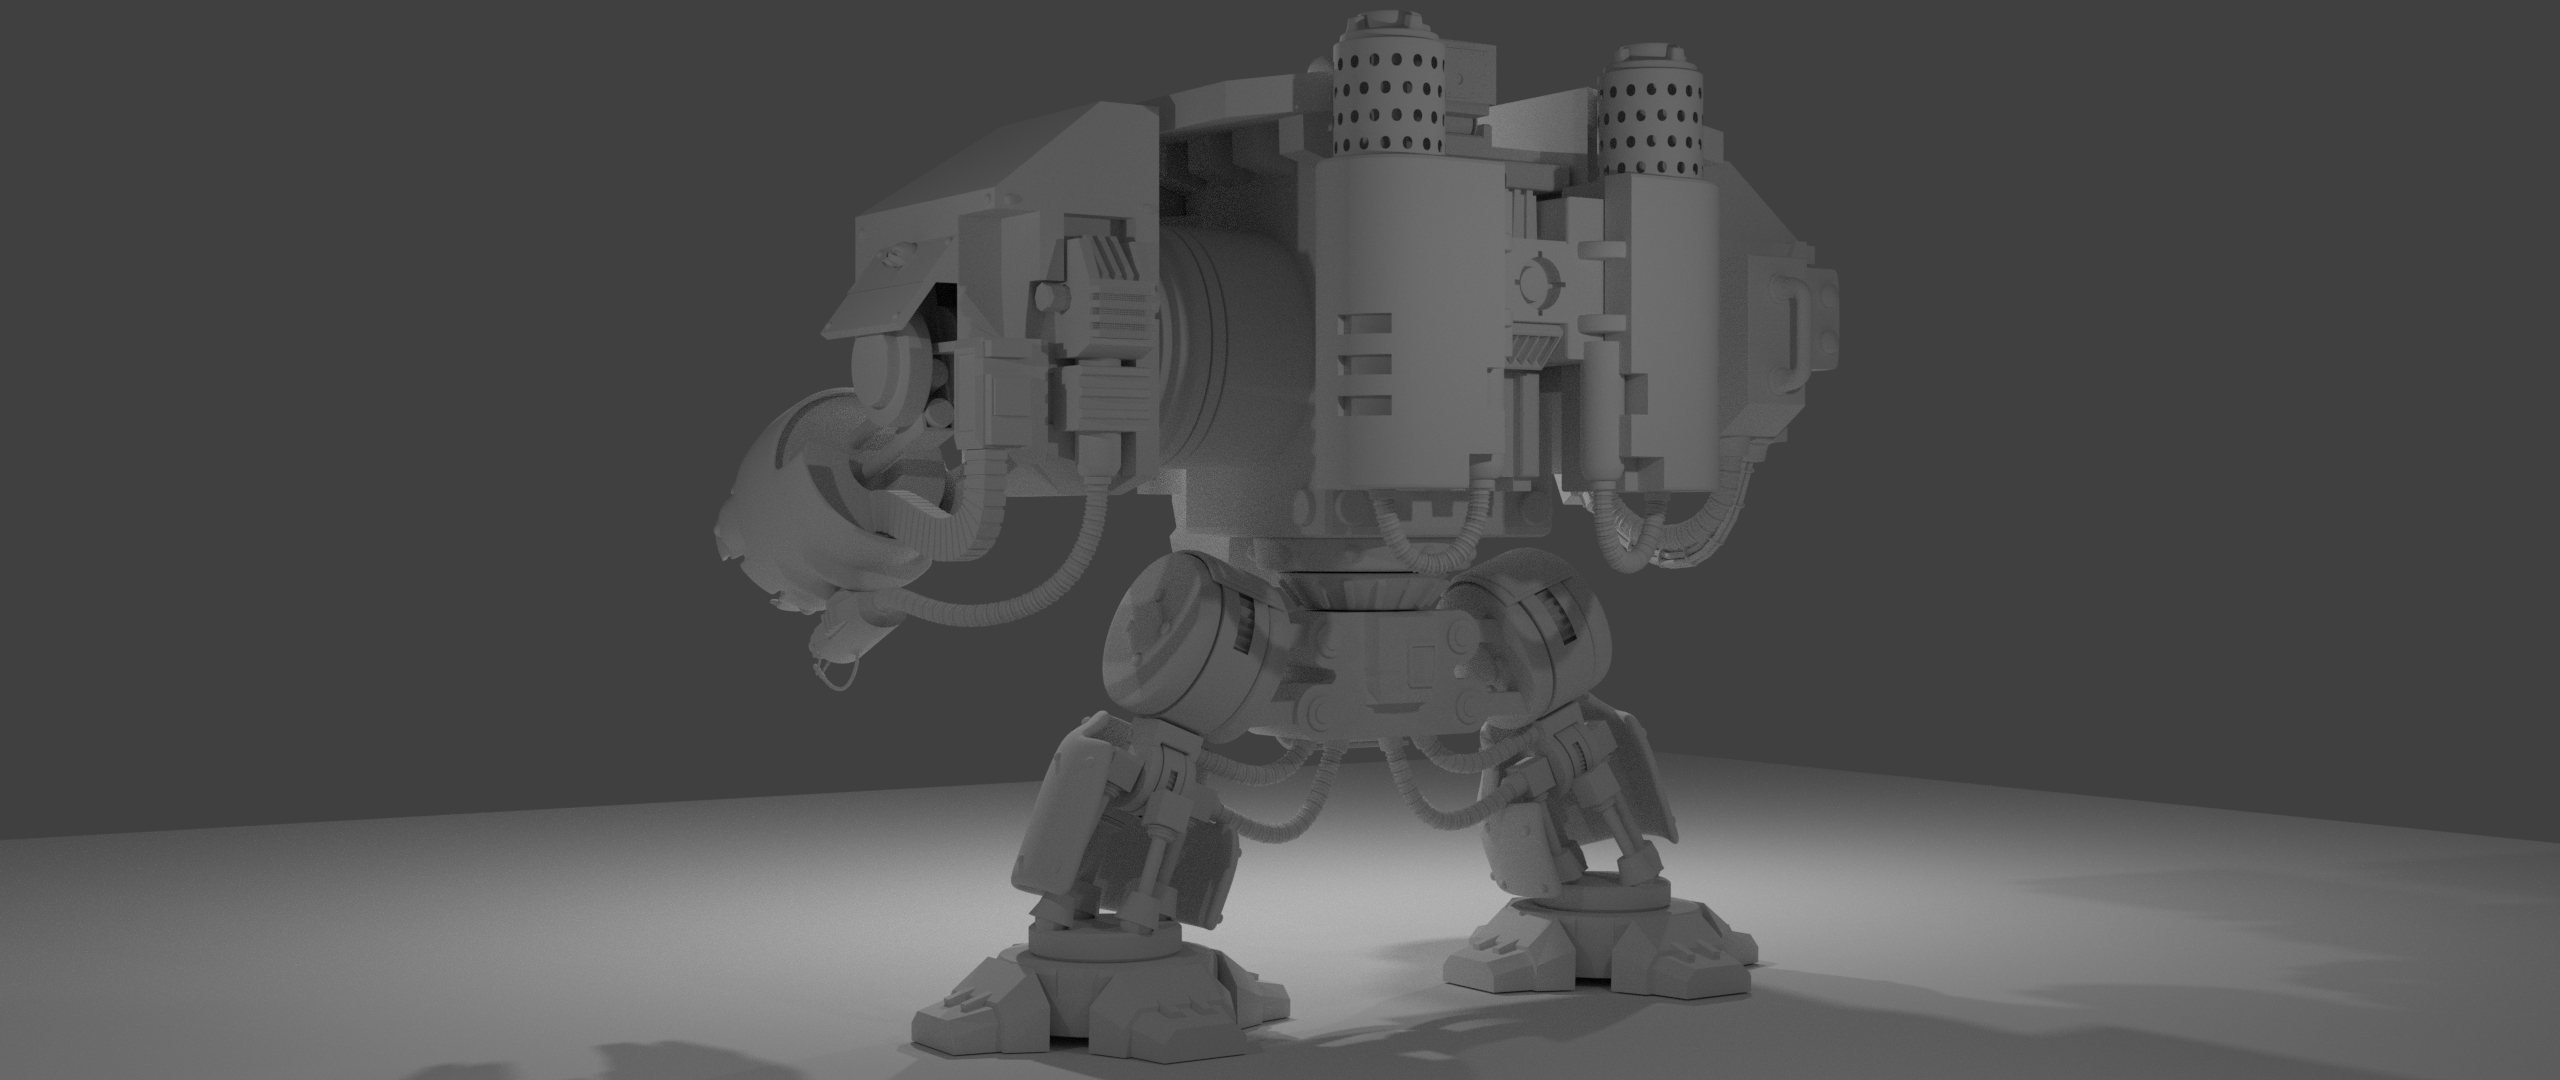 Dreadnought in Blender cycles render image